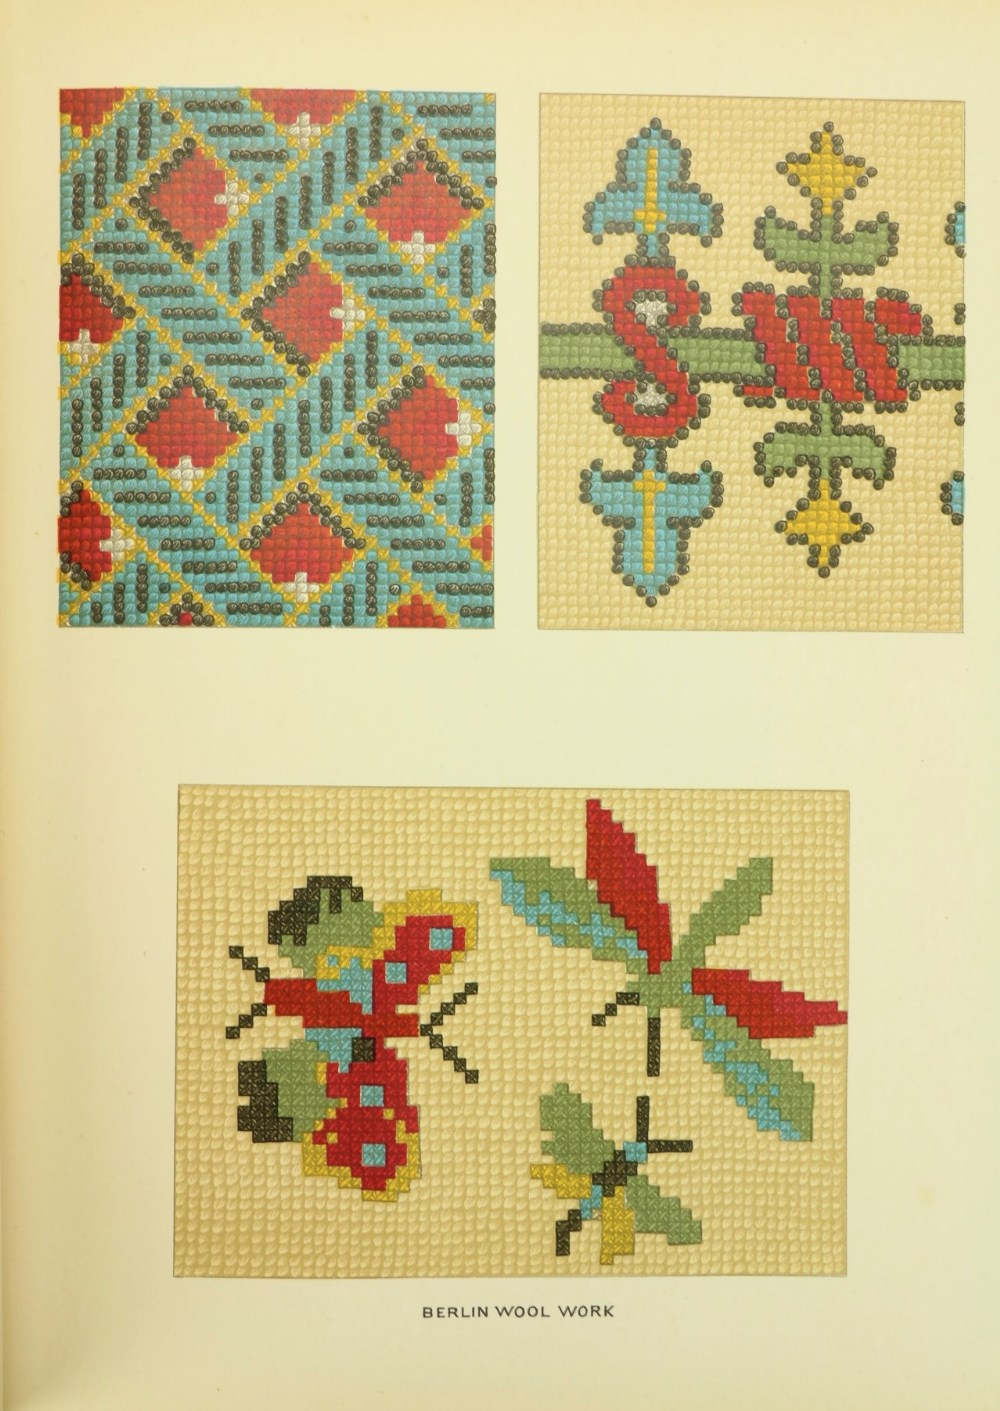 Caulfield (S.F.A.) & Seward (B.C.)TheDictionary of Needlework, thick 4to Lond. n.d.Second Edn., - Image 5 of 5